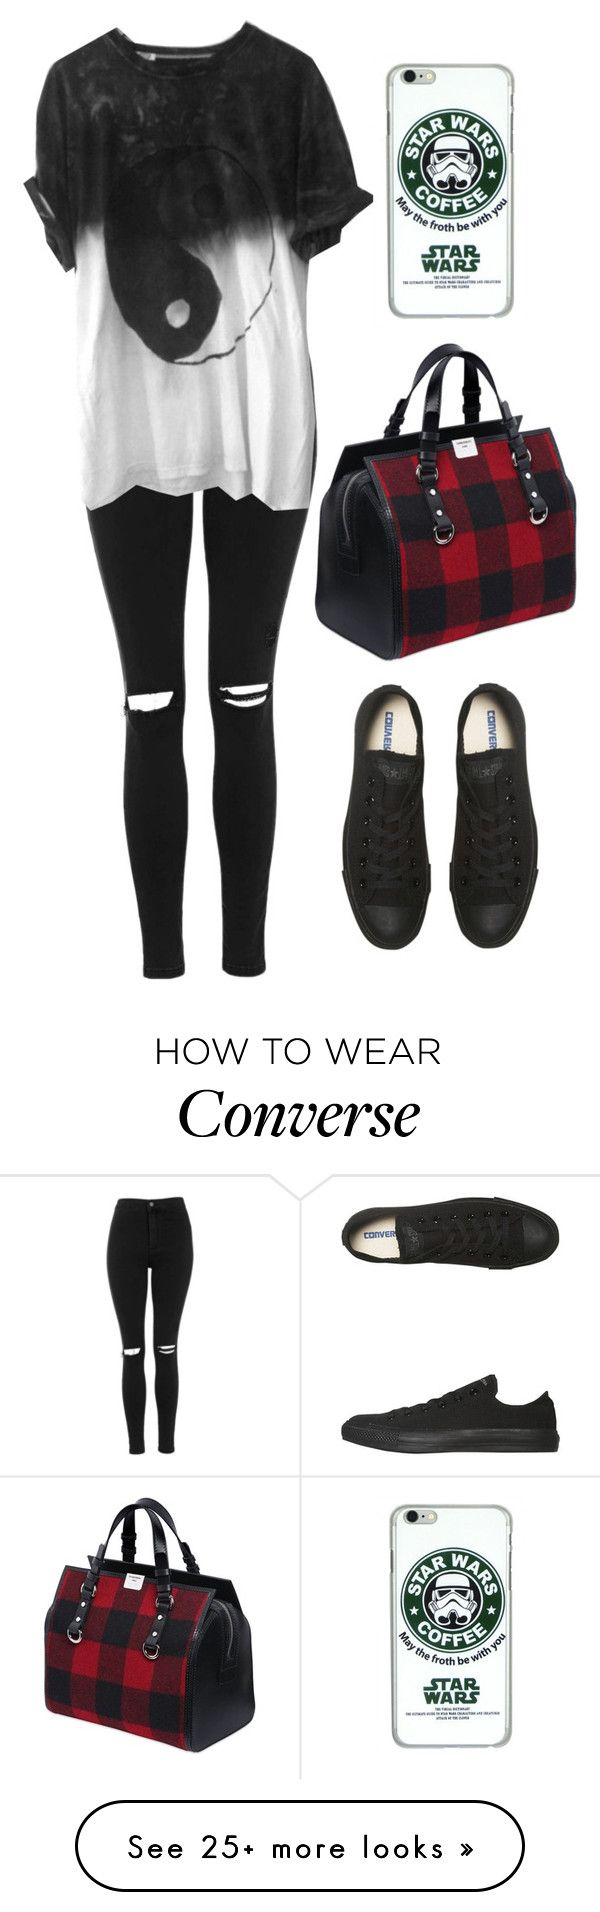 #314 by uccelli on Polyvore featuring Topshop, Dsquared2, Converse, womens clothing, women, female, woman, misses and juniors